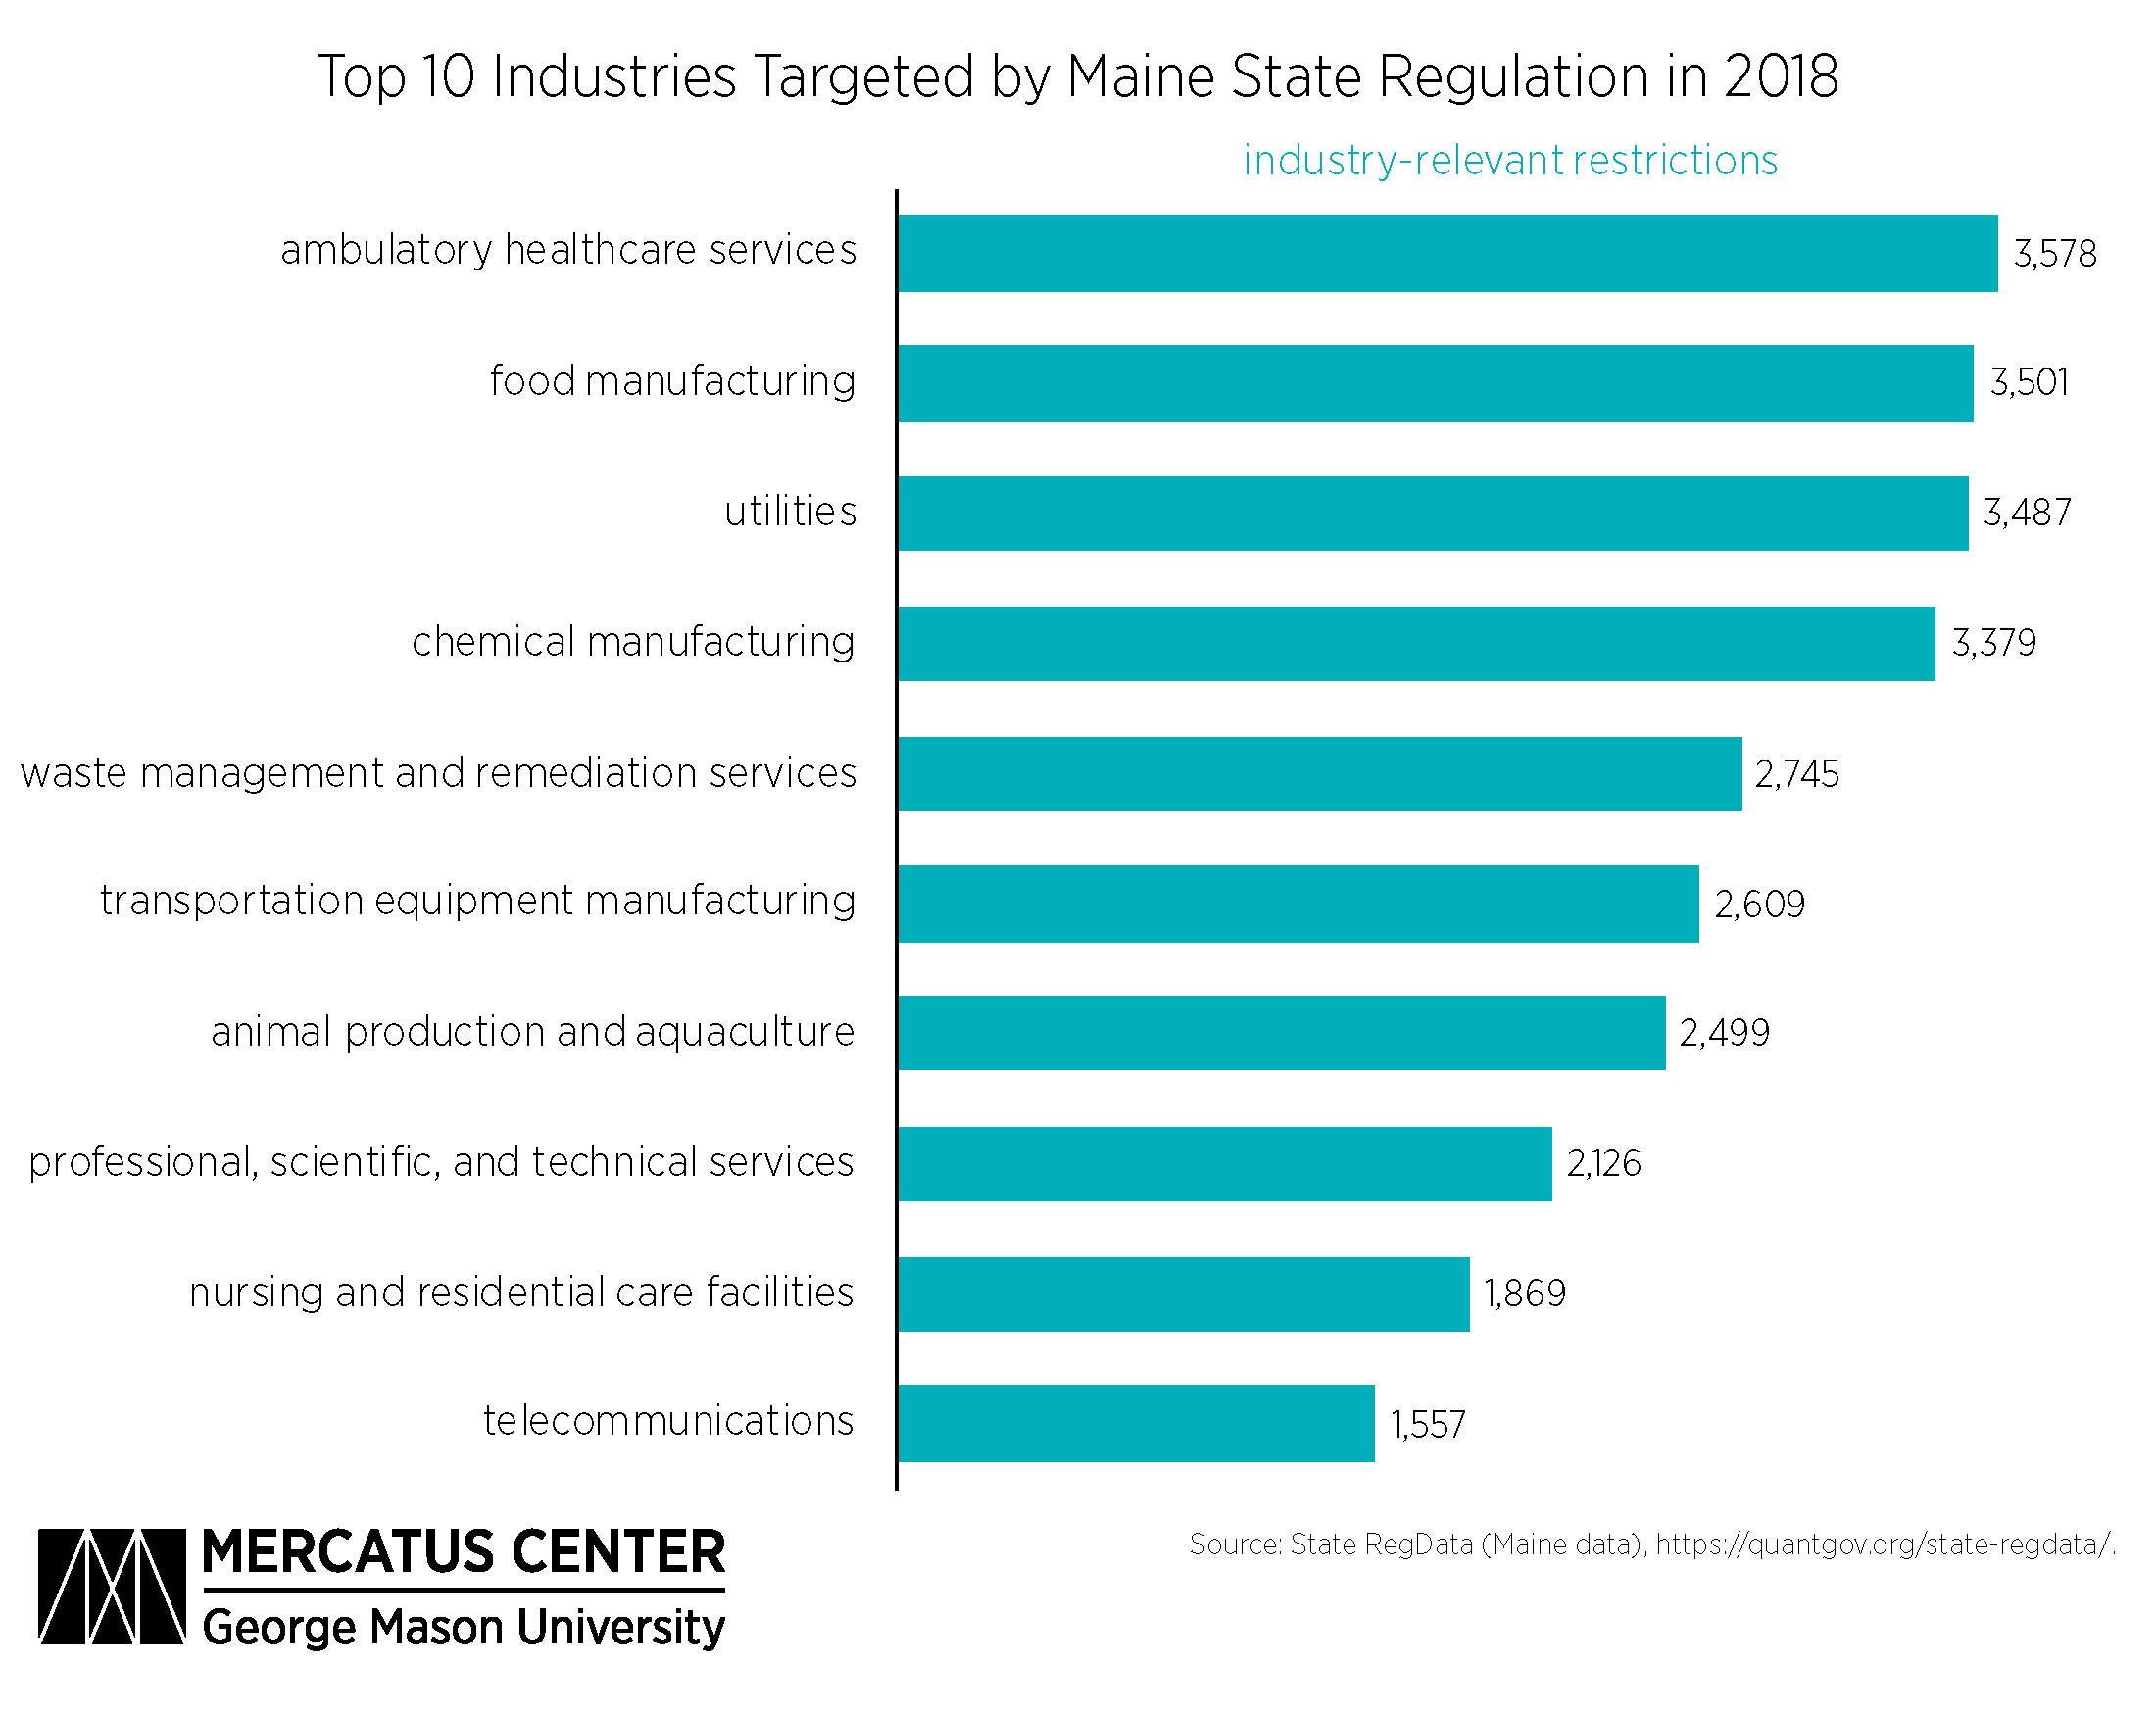 Figure 1. Top 10 Industries Targeted by Maine State Regulation in 2018